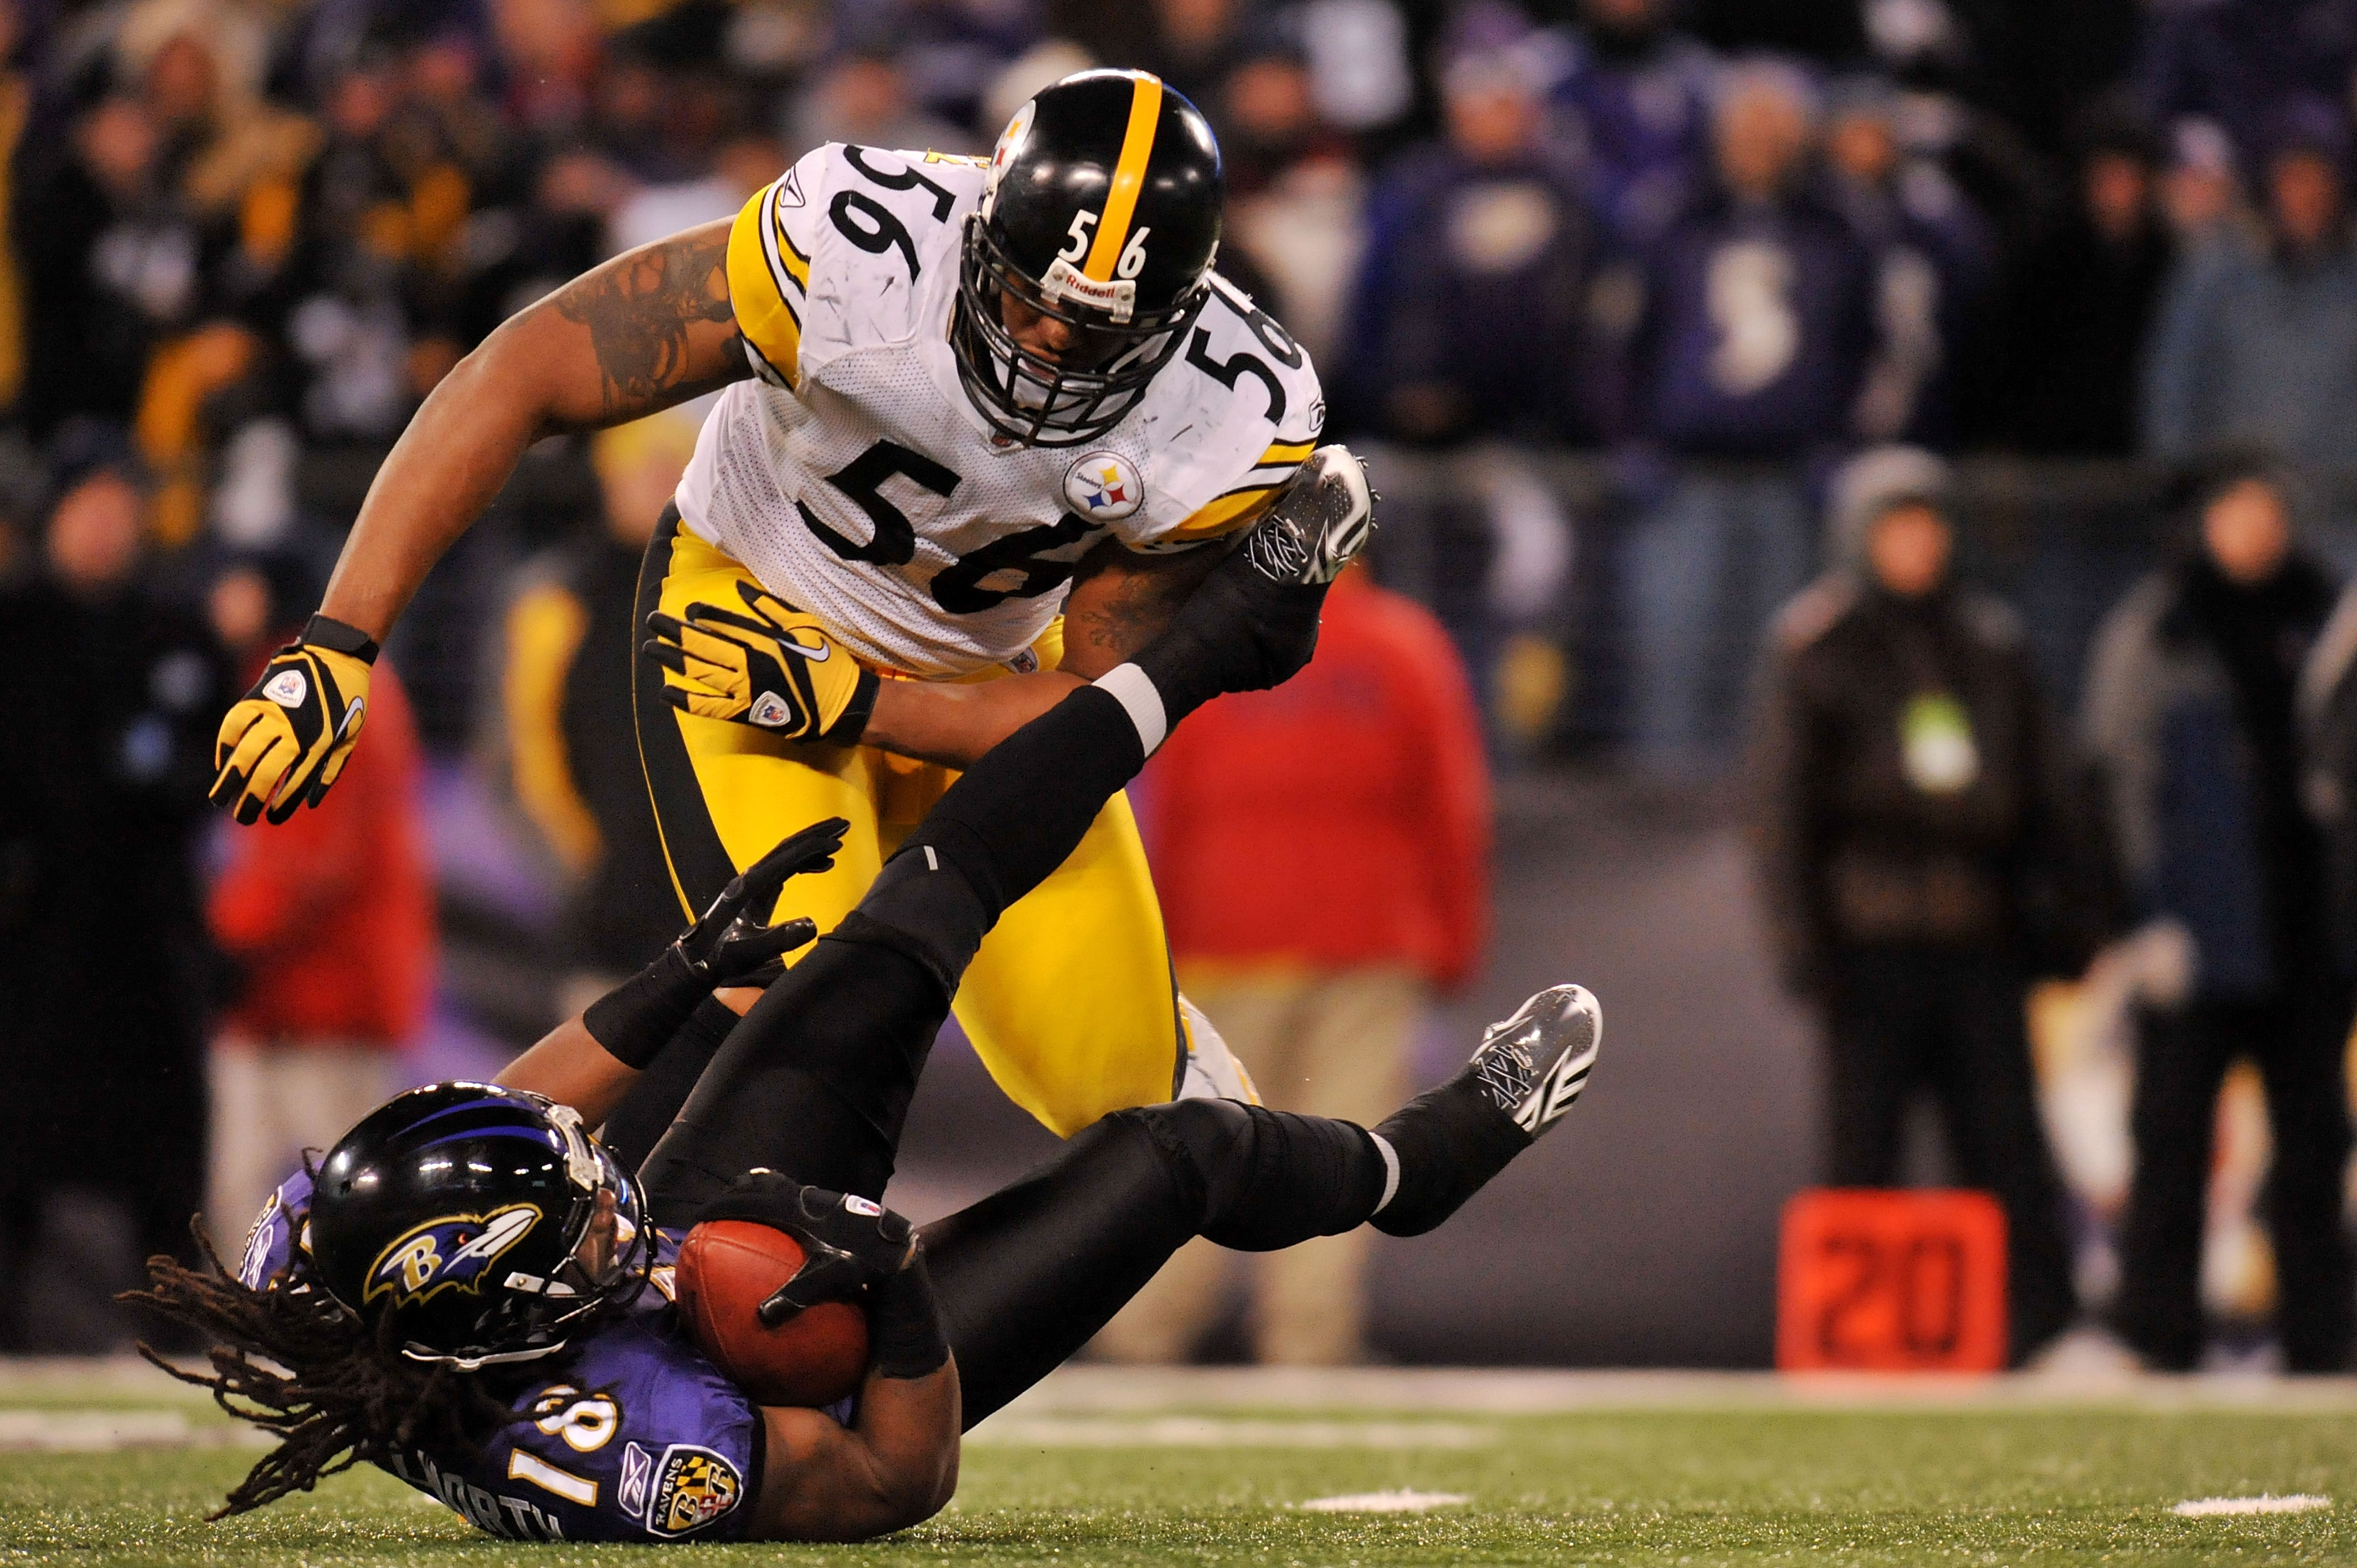 BALTIMORE, MD - DECEMBER 05:  Wide receiver Donte' Stallworth #18 of the Baltimore Ravens is tackeled behind the line of scrimmage by linebacker LaMarr Woodley #56 of the Pittsburgh Steelers during the fourth quarter of the game at M&T Bank Stadium on Dec